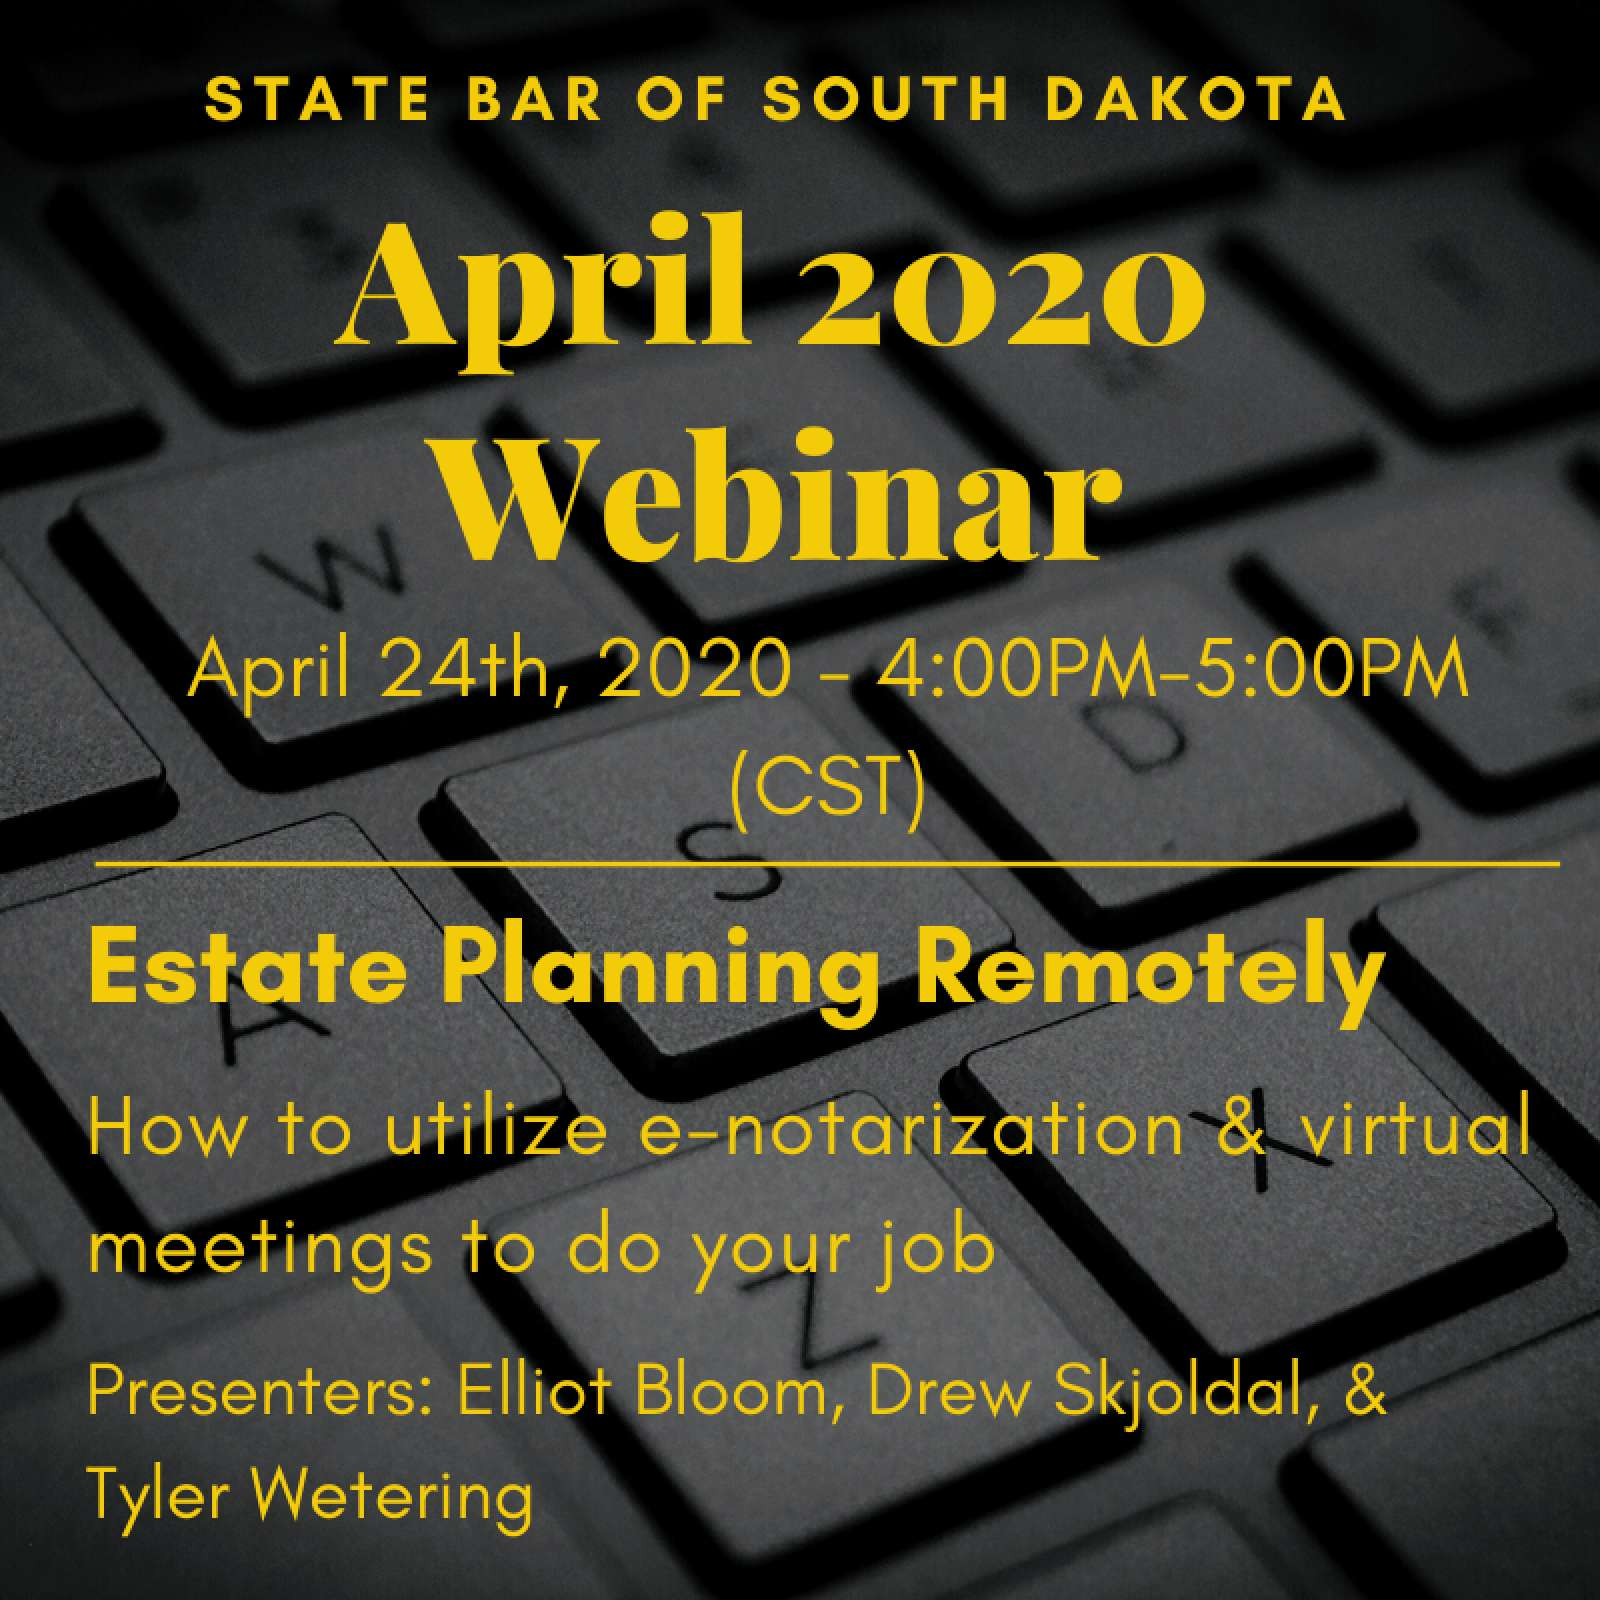 Drew Skjoldal serves as a panelist at the State Bar Webinar: Estate Planning Remotely – April 24th at 3:00PM (MST)